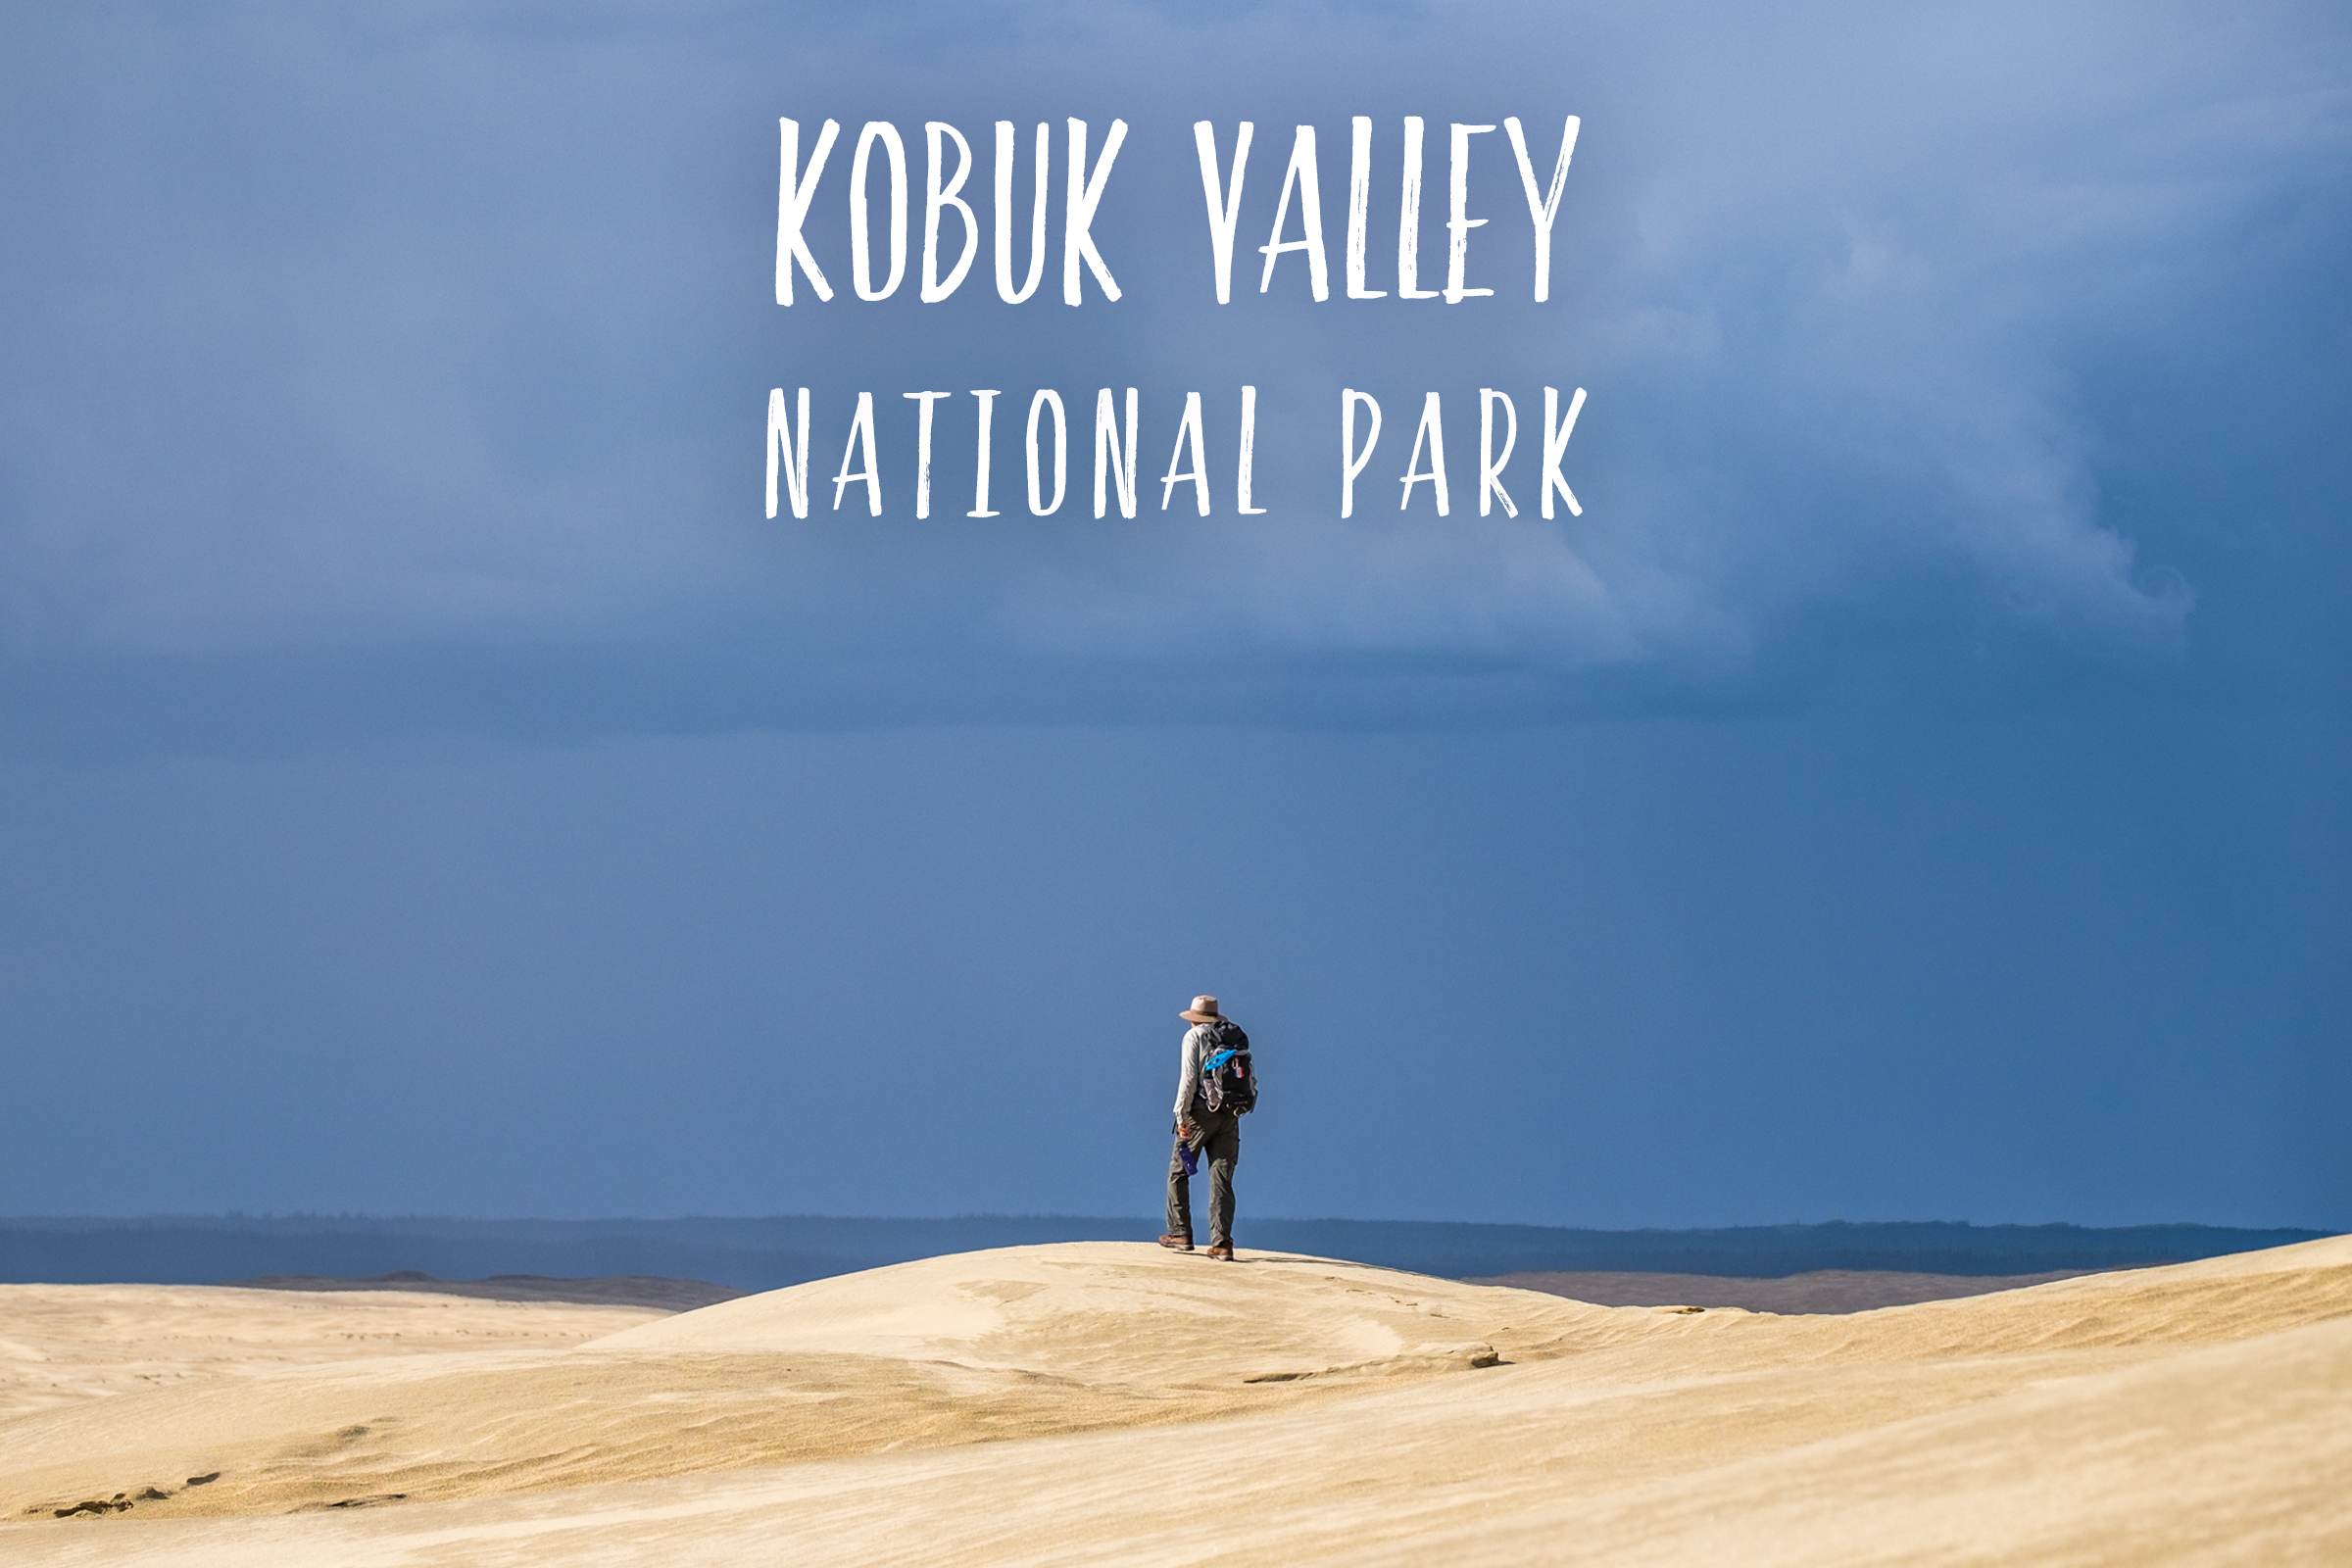 Park 36/59: Kobuk Valley National Park in Alaska